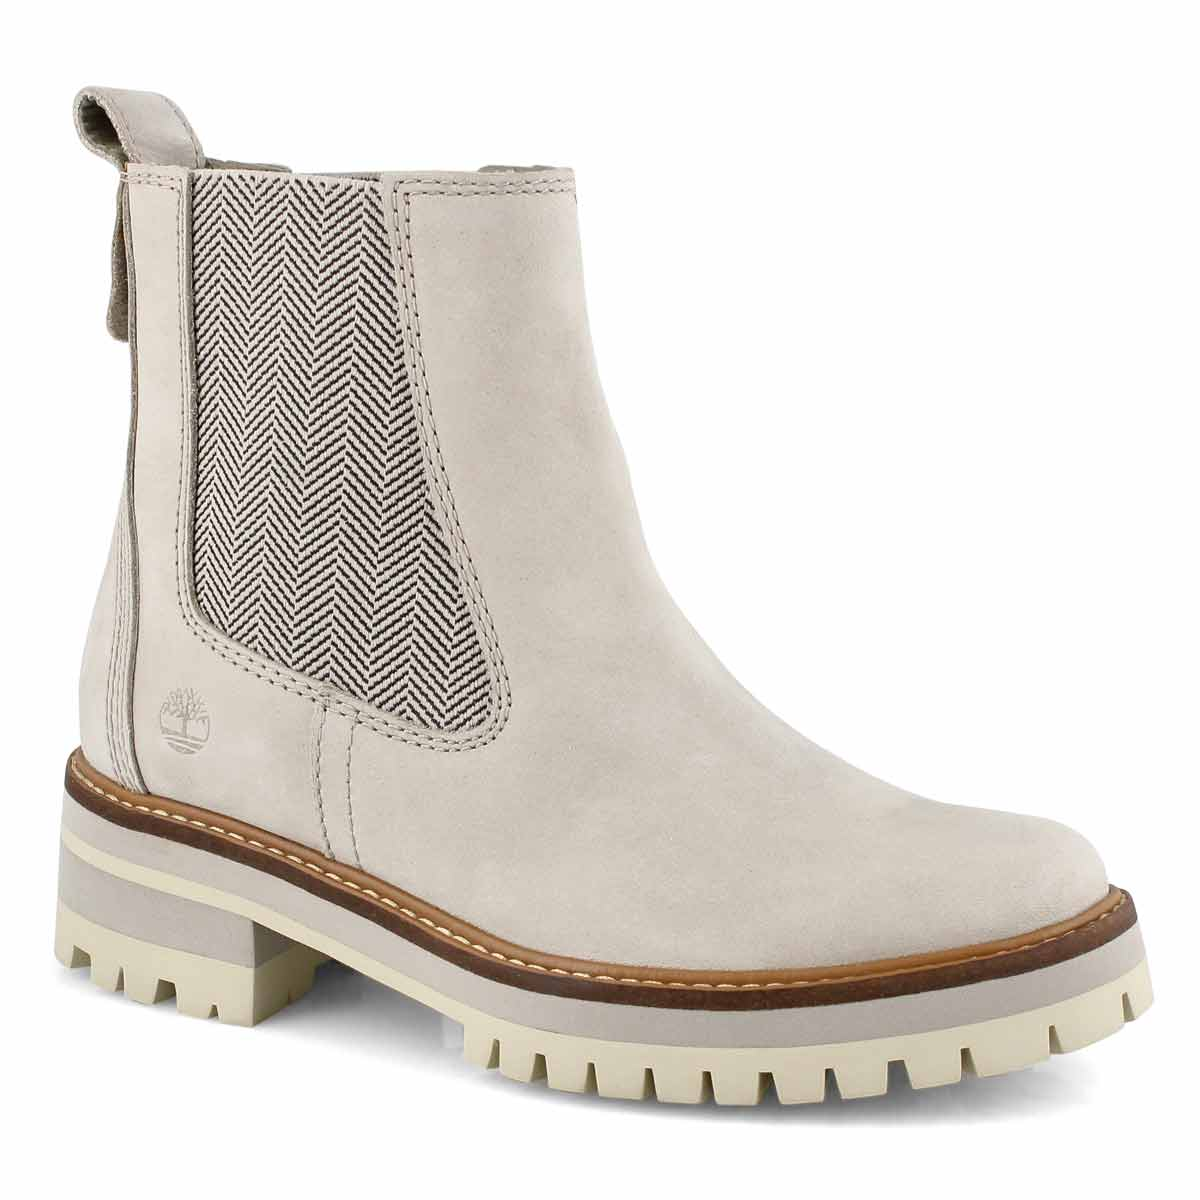 Timberland #A23UY Women's shoes Ankle Boots buy shoes at our